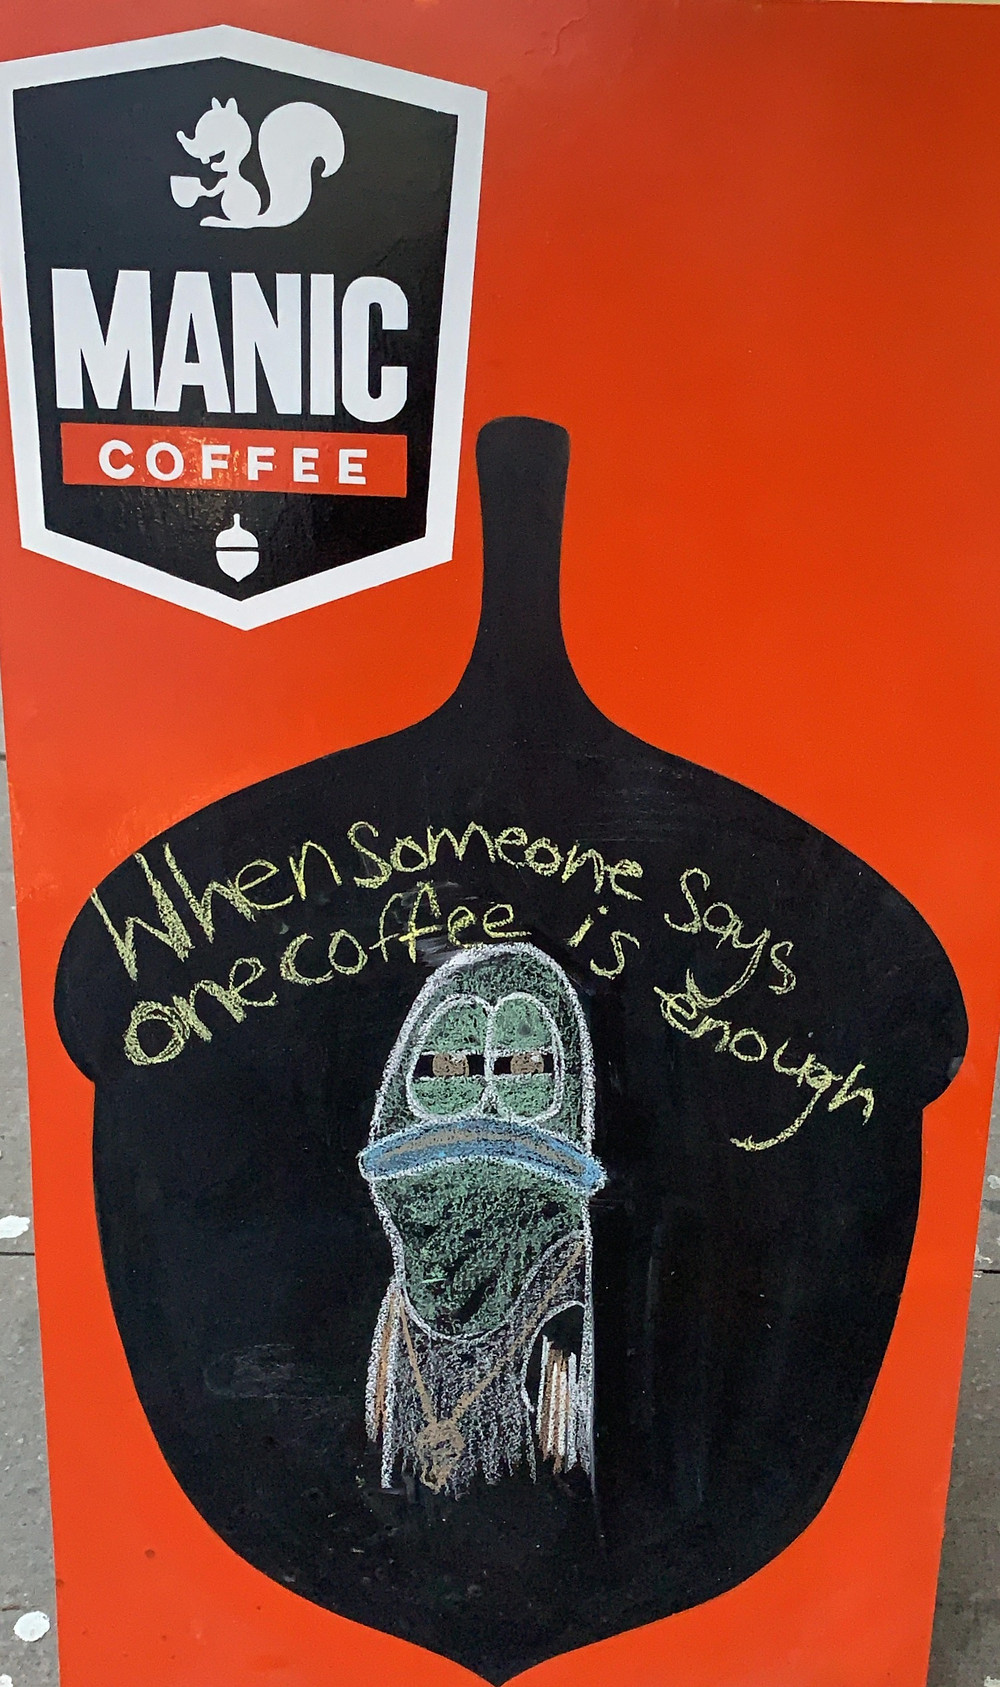 Manic Coffee signboard, Spongebob reference